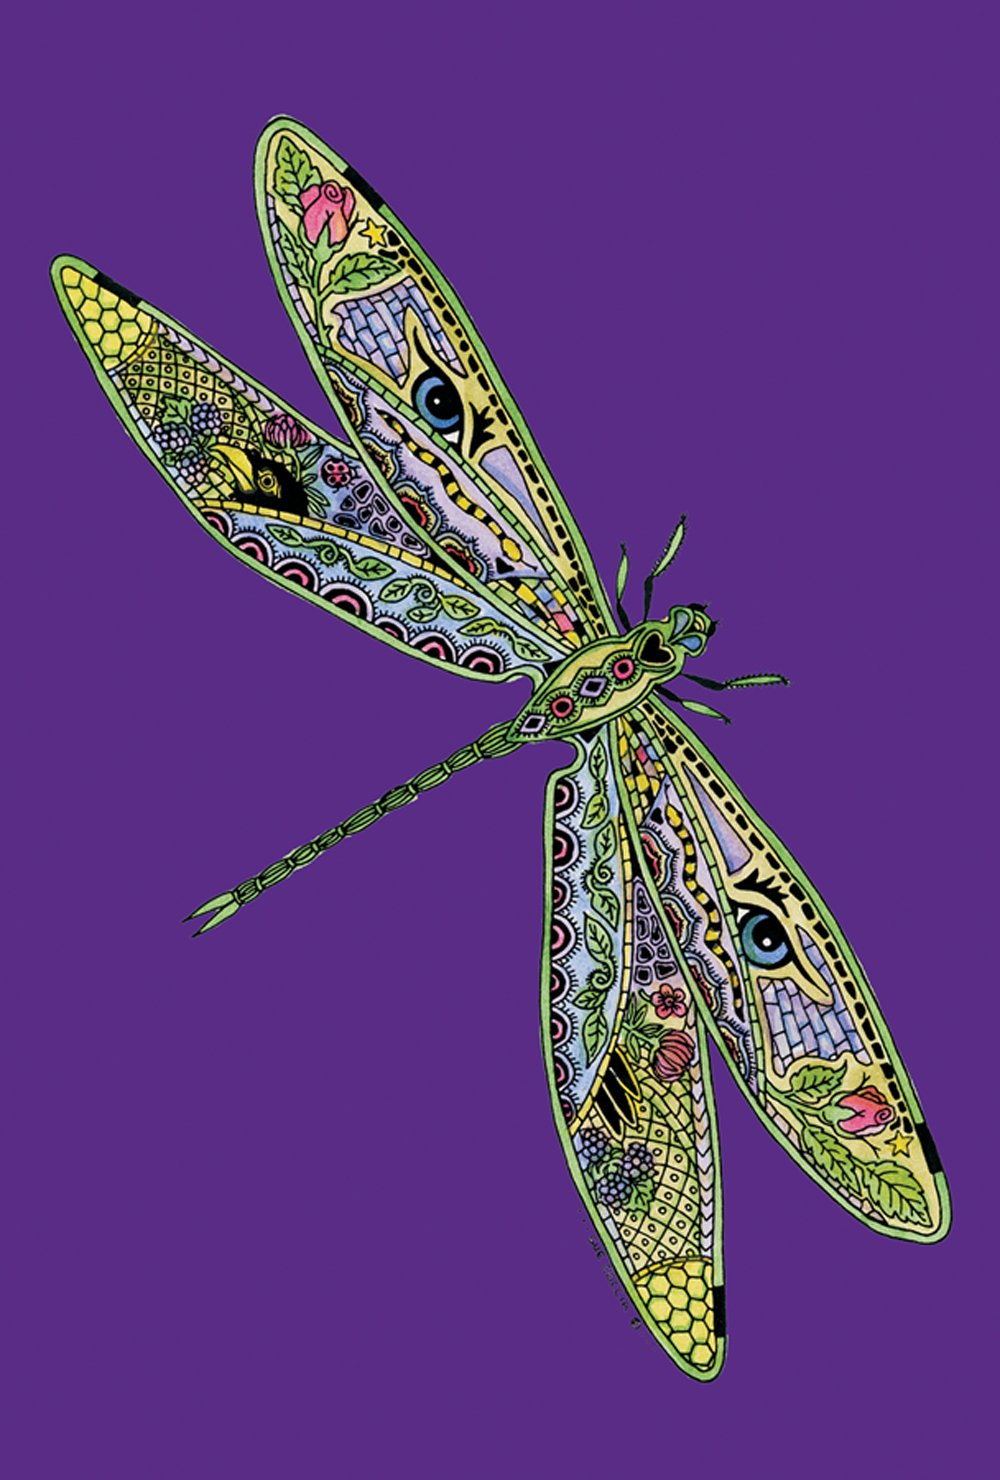 Toland Home Garden Animal Spirits Dragonfly 28 x 40 Inch Decorative Native Spiritual Flying Insect House Flag